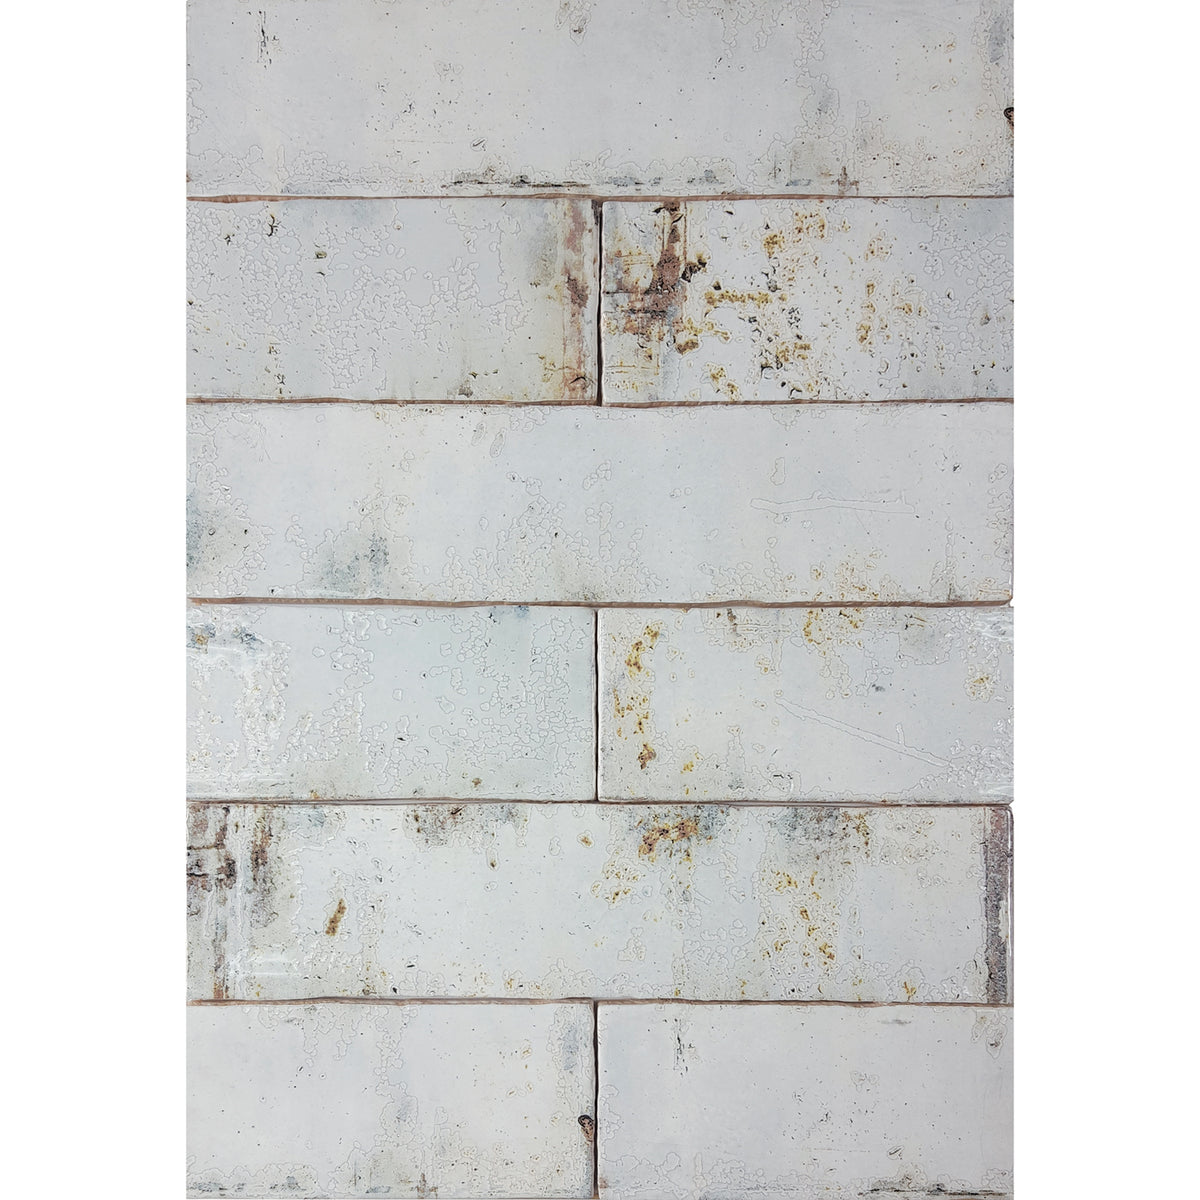 Tesoro Decorative Collection - Grunge Ceramic 3 in. x. 12 in. Wall Tile - Iron